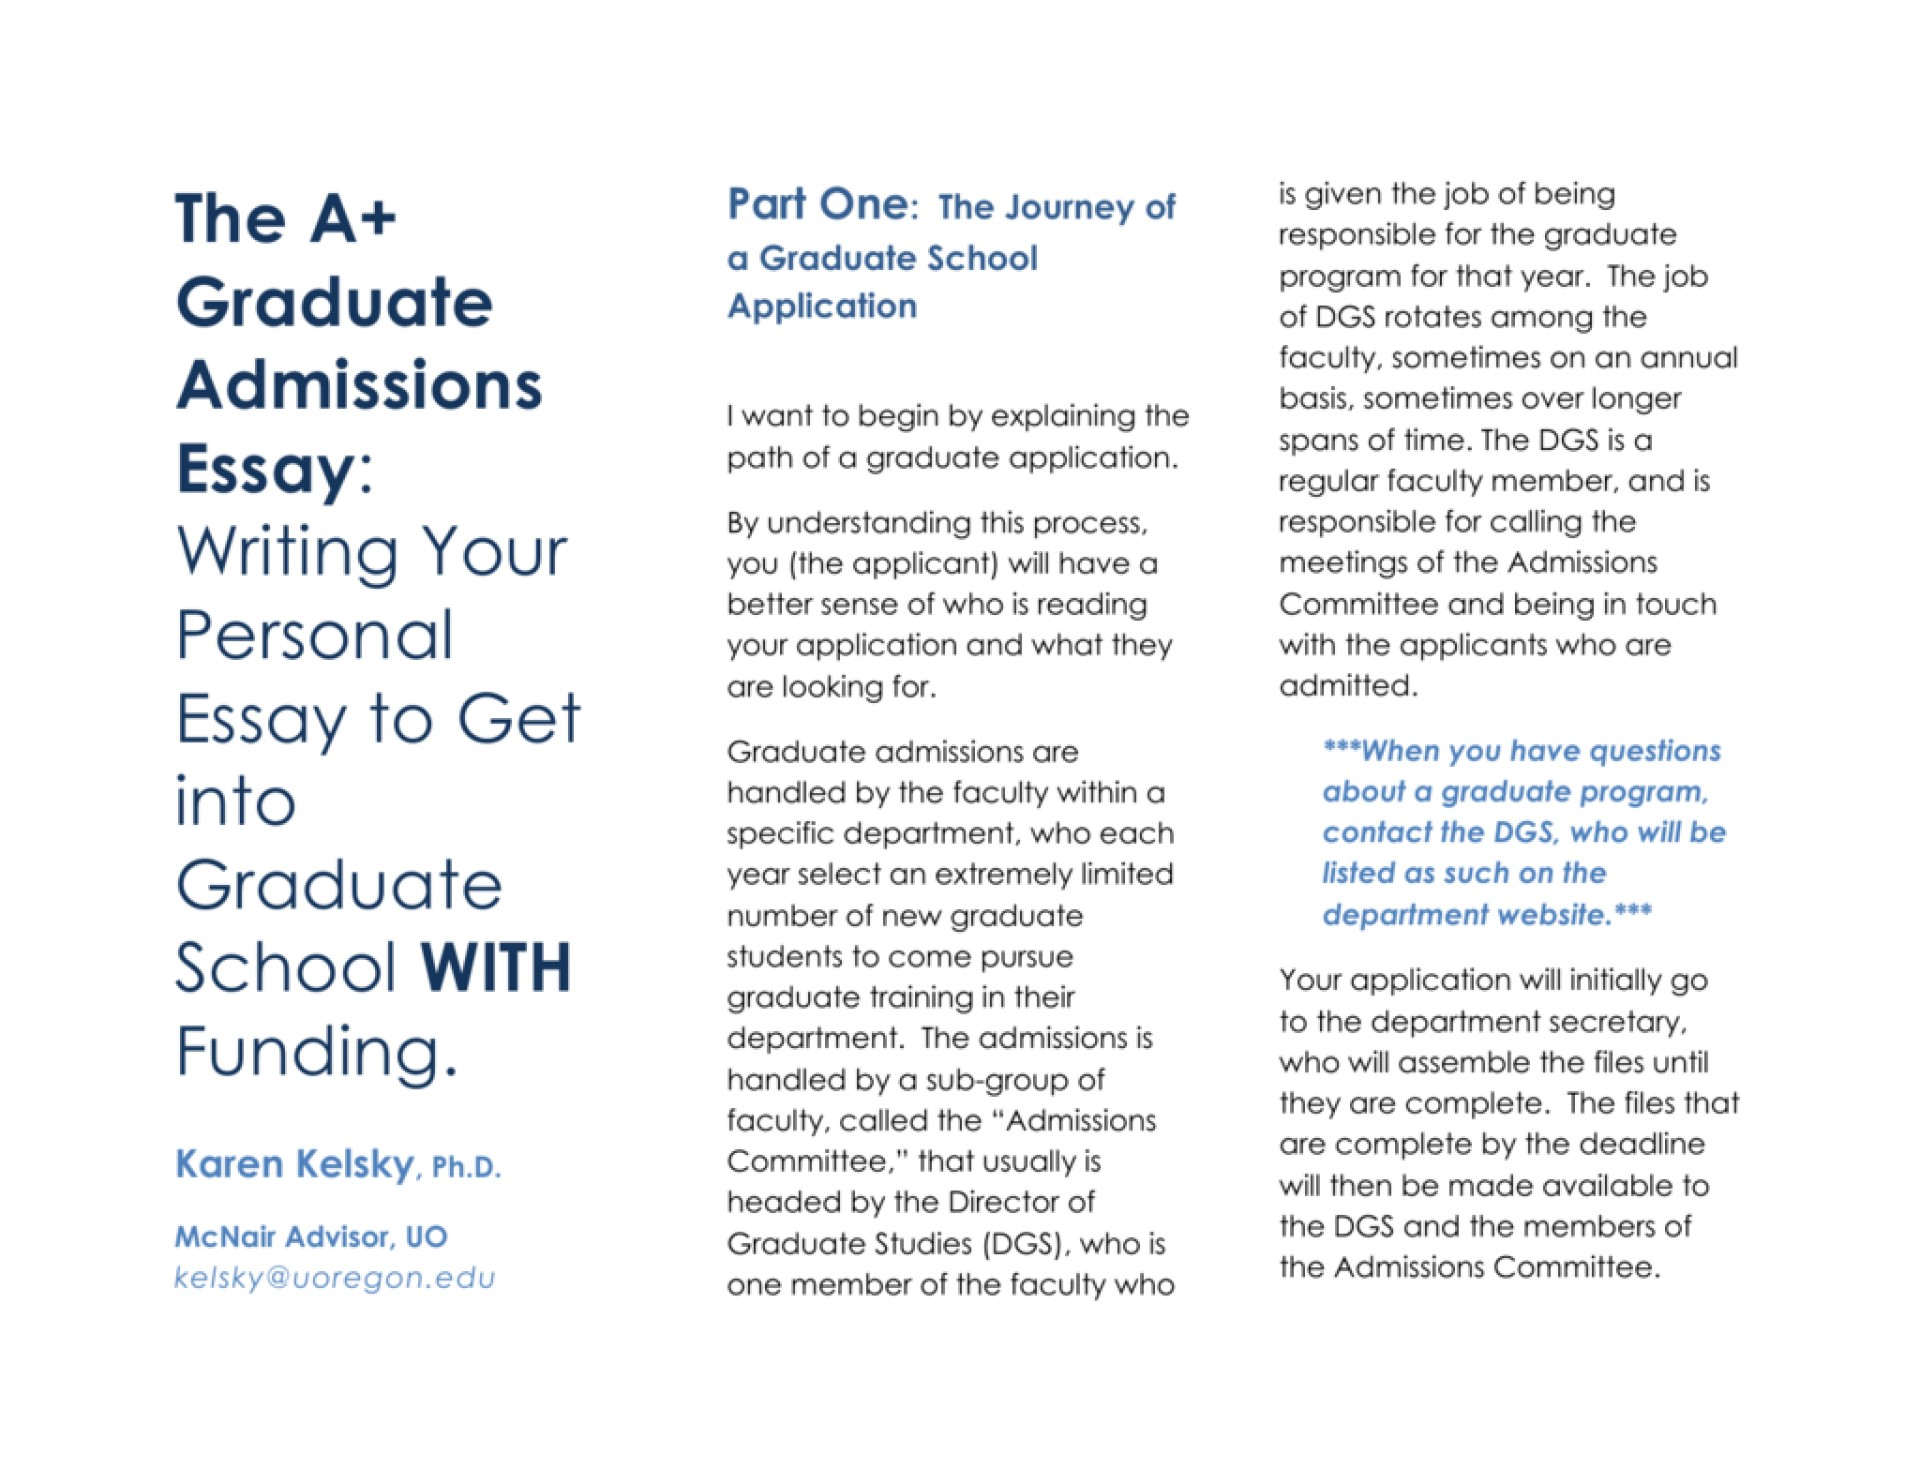 020 Essay Example For Graduate Admission 007005553 1 Surprising Masters How To Write An Degree In Nursing 1920